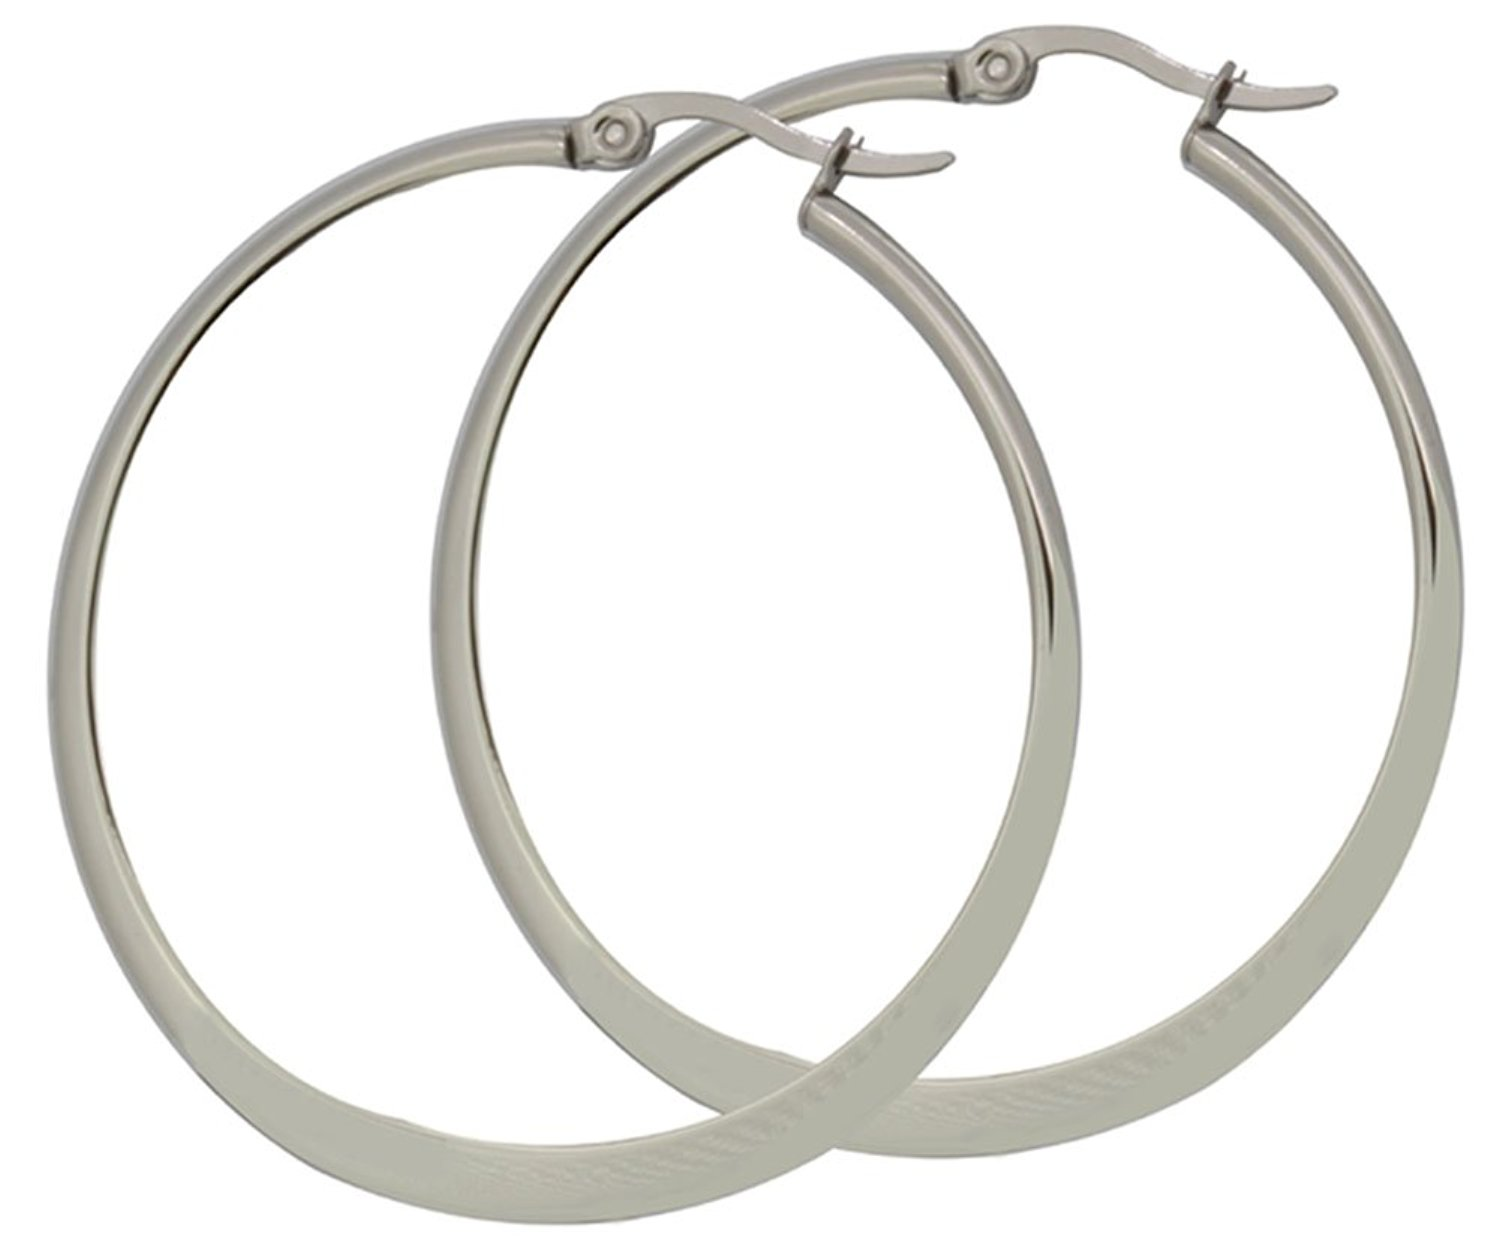 Choice One Pair Stainless Steel Flat Accent Earrings